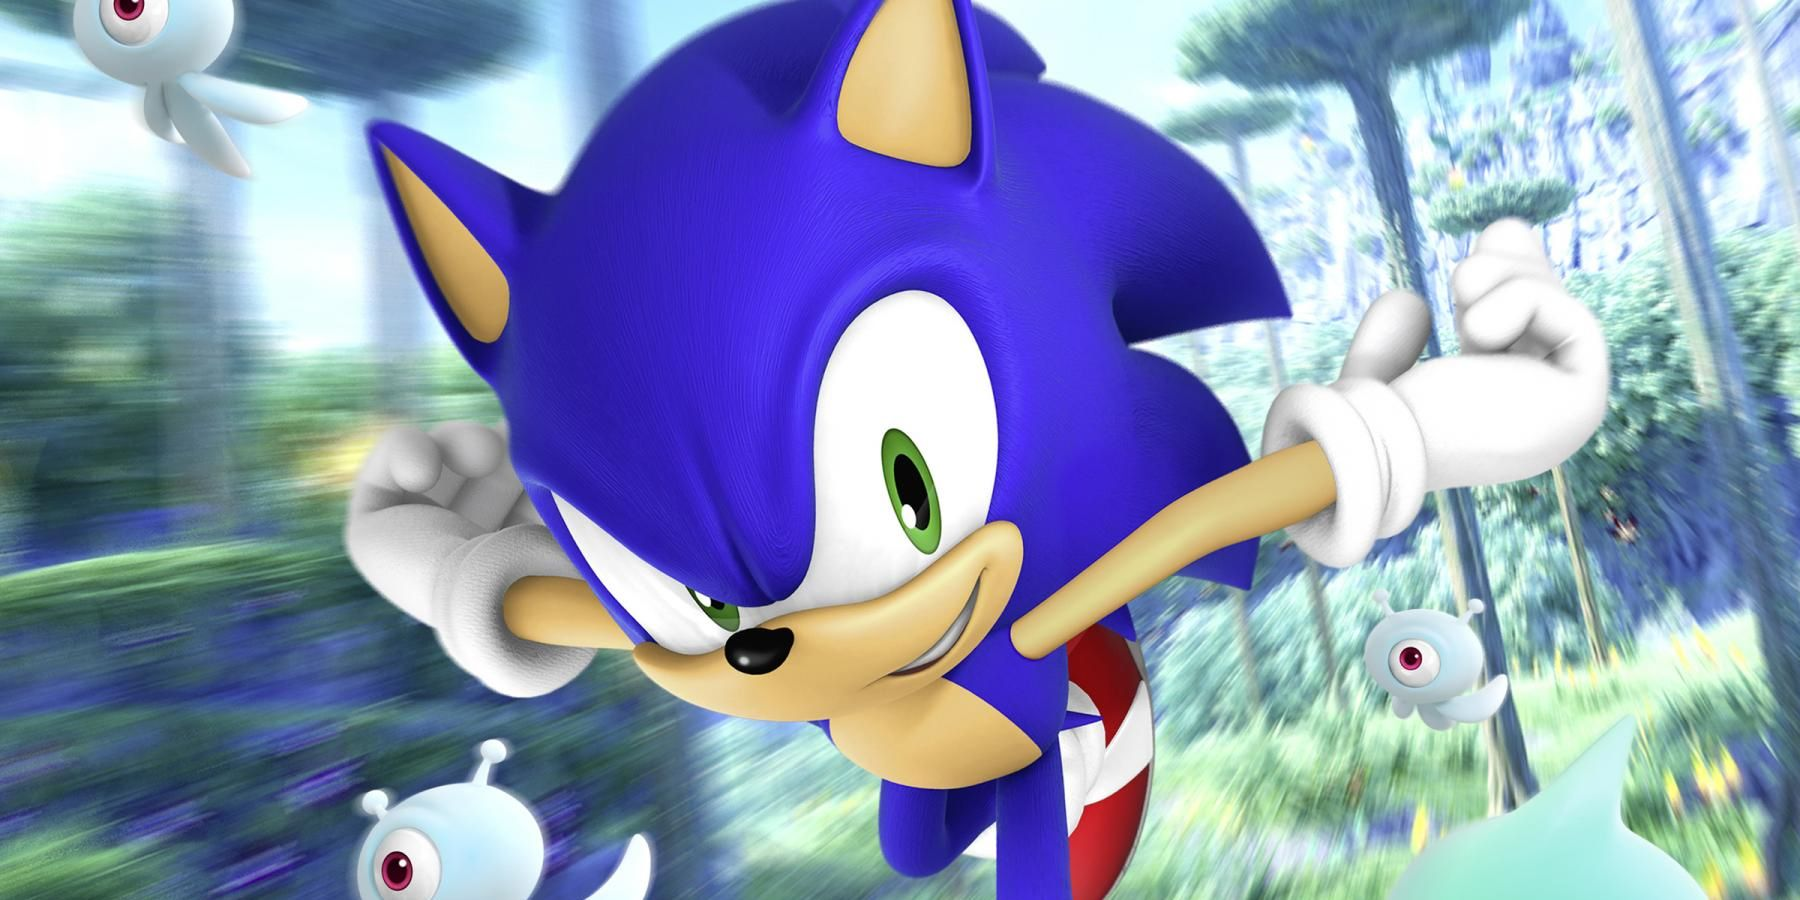 What S Next After Sonic The Hedgehog Exbulletin